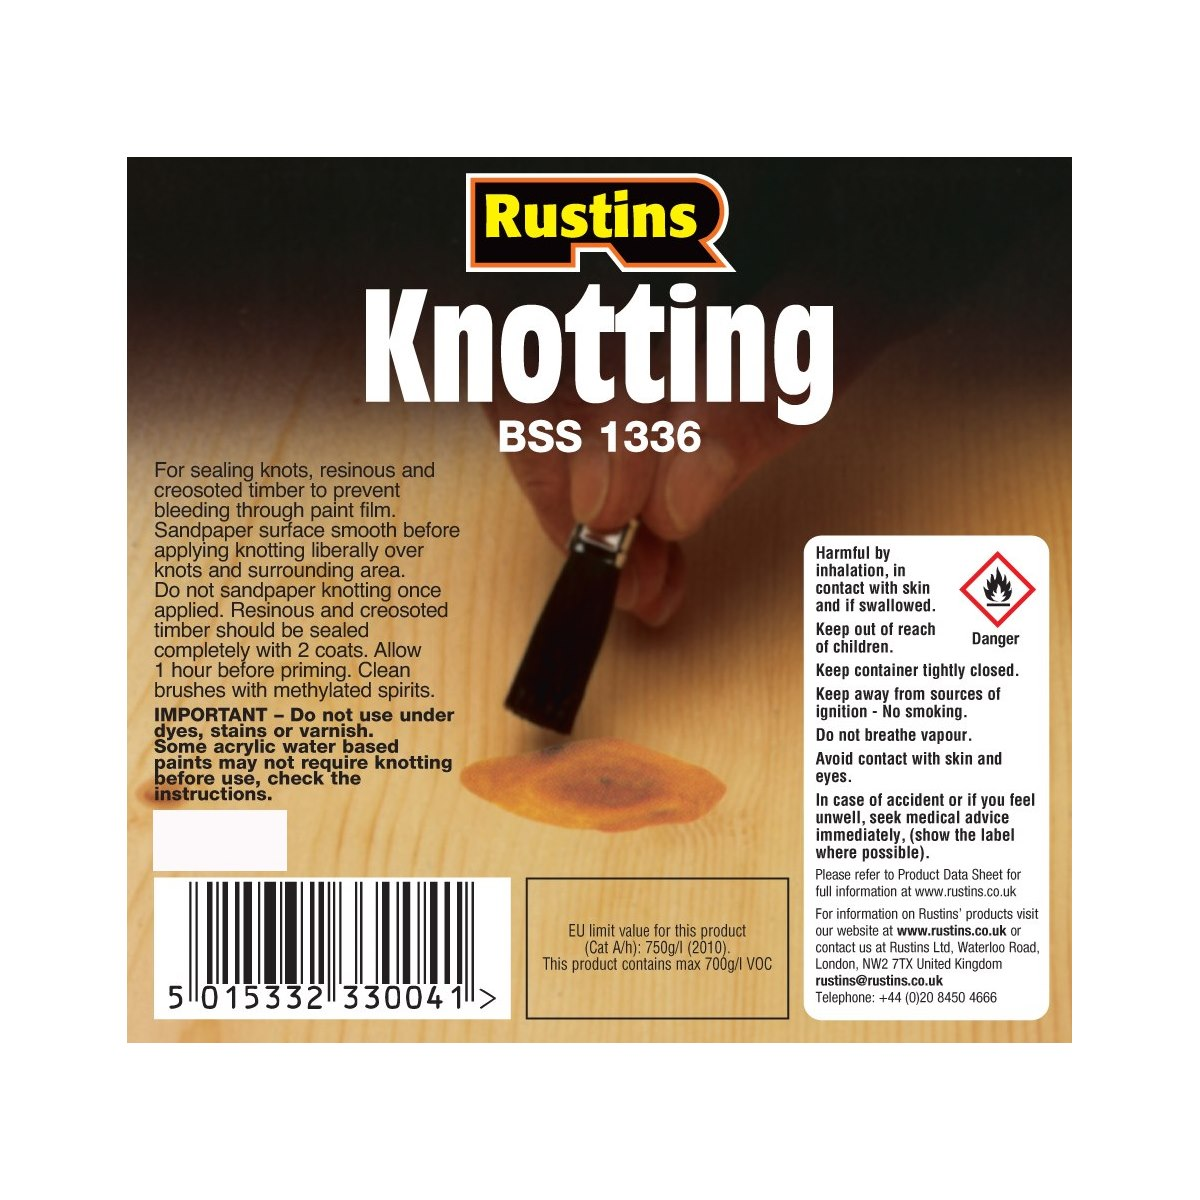 Rustins Knotting for sealing knots